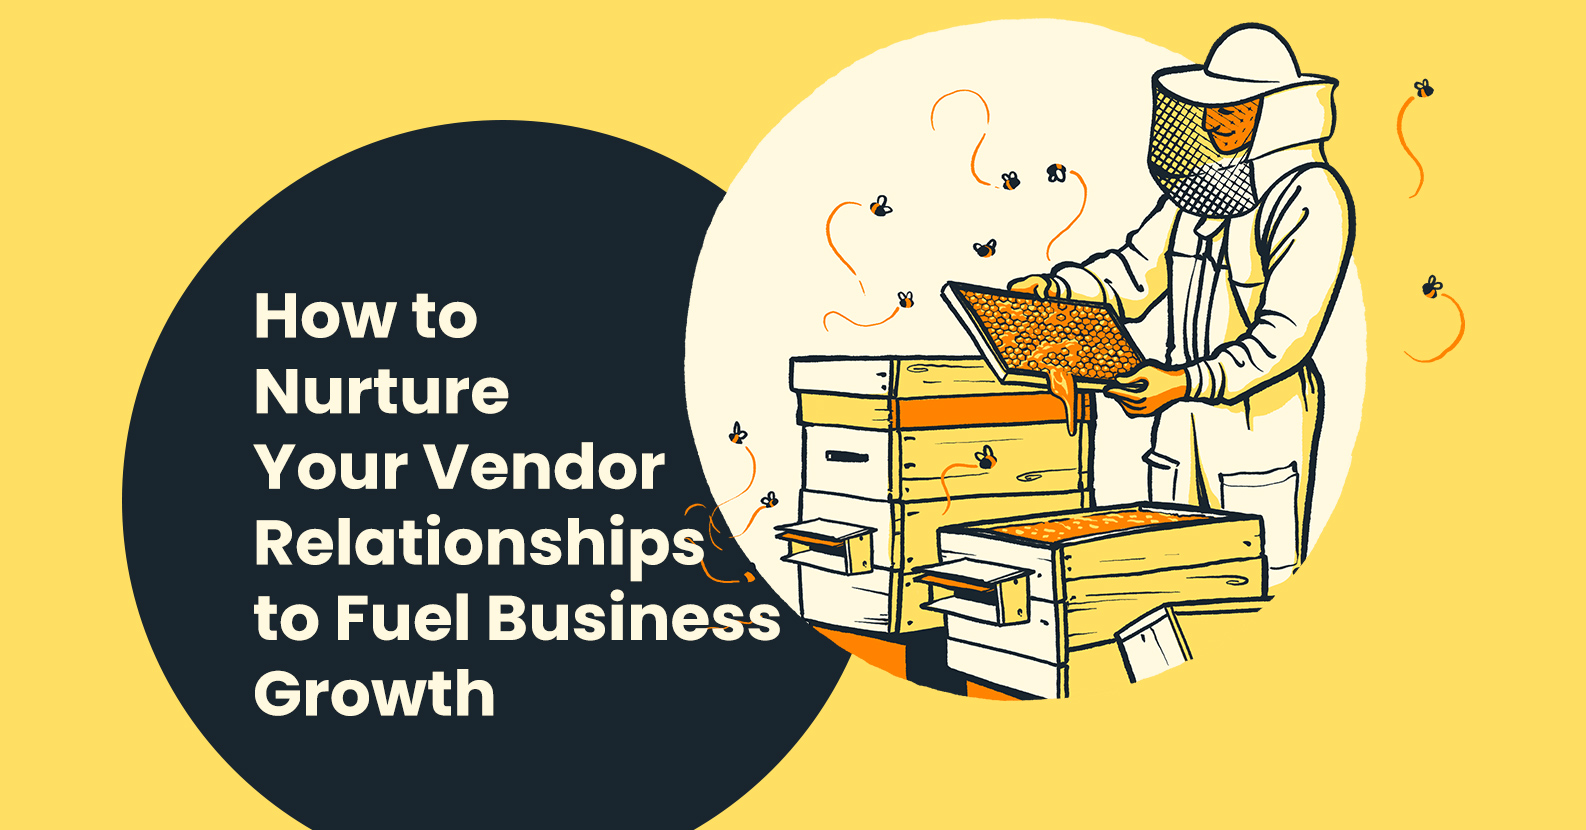 How to Nurture Your Vendor Relationships to Fuel Business Growth